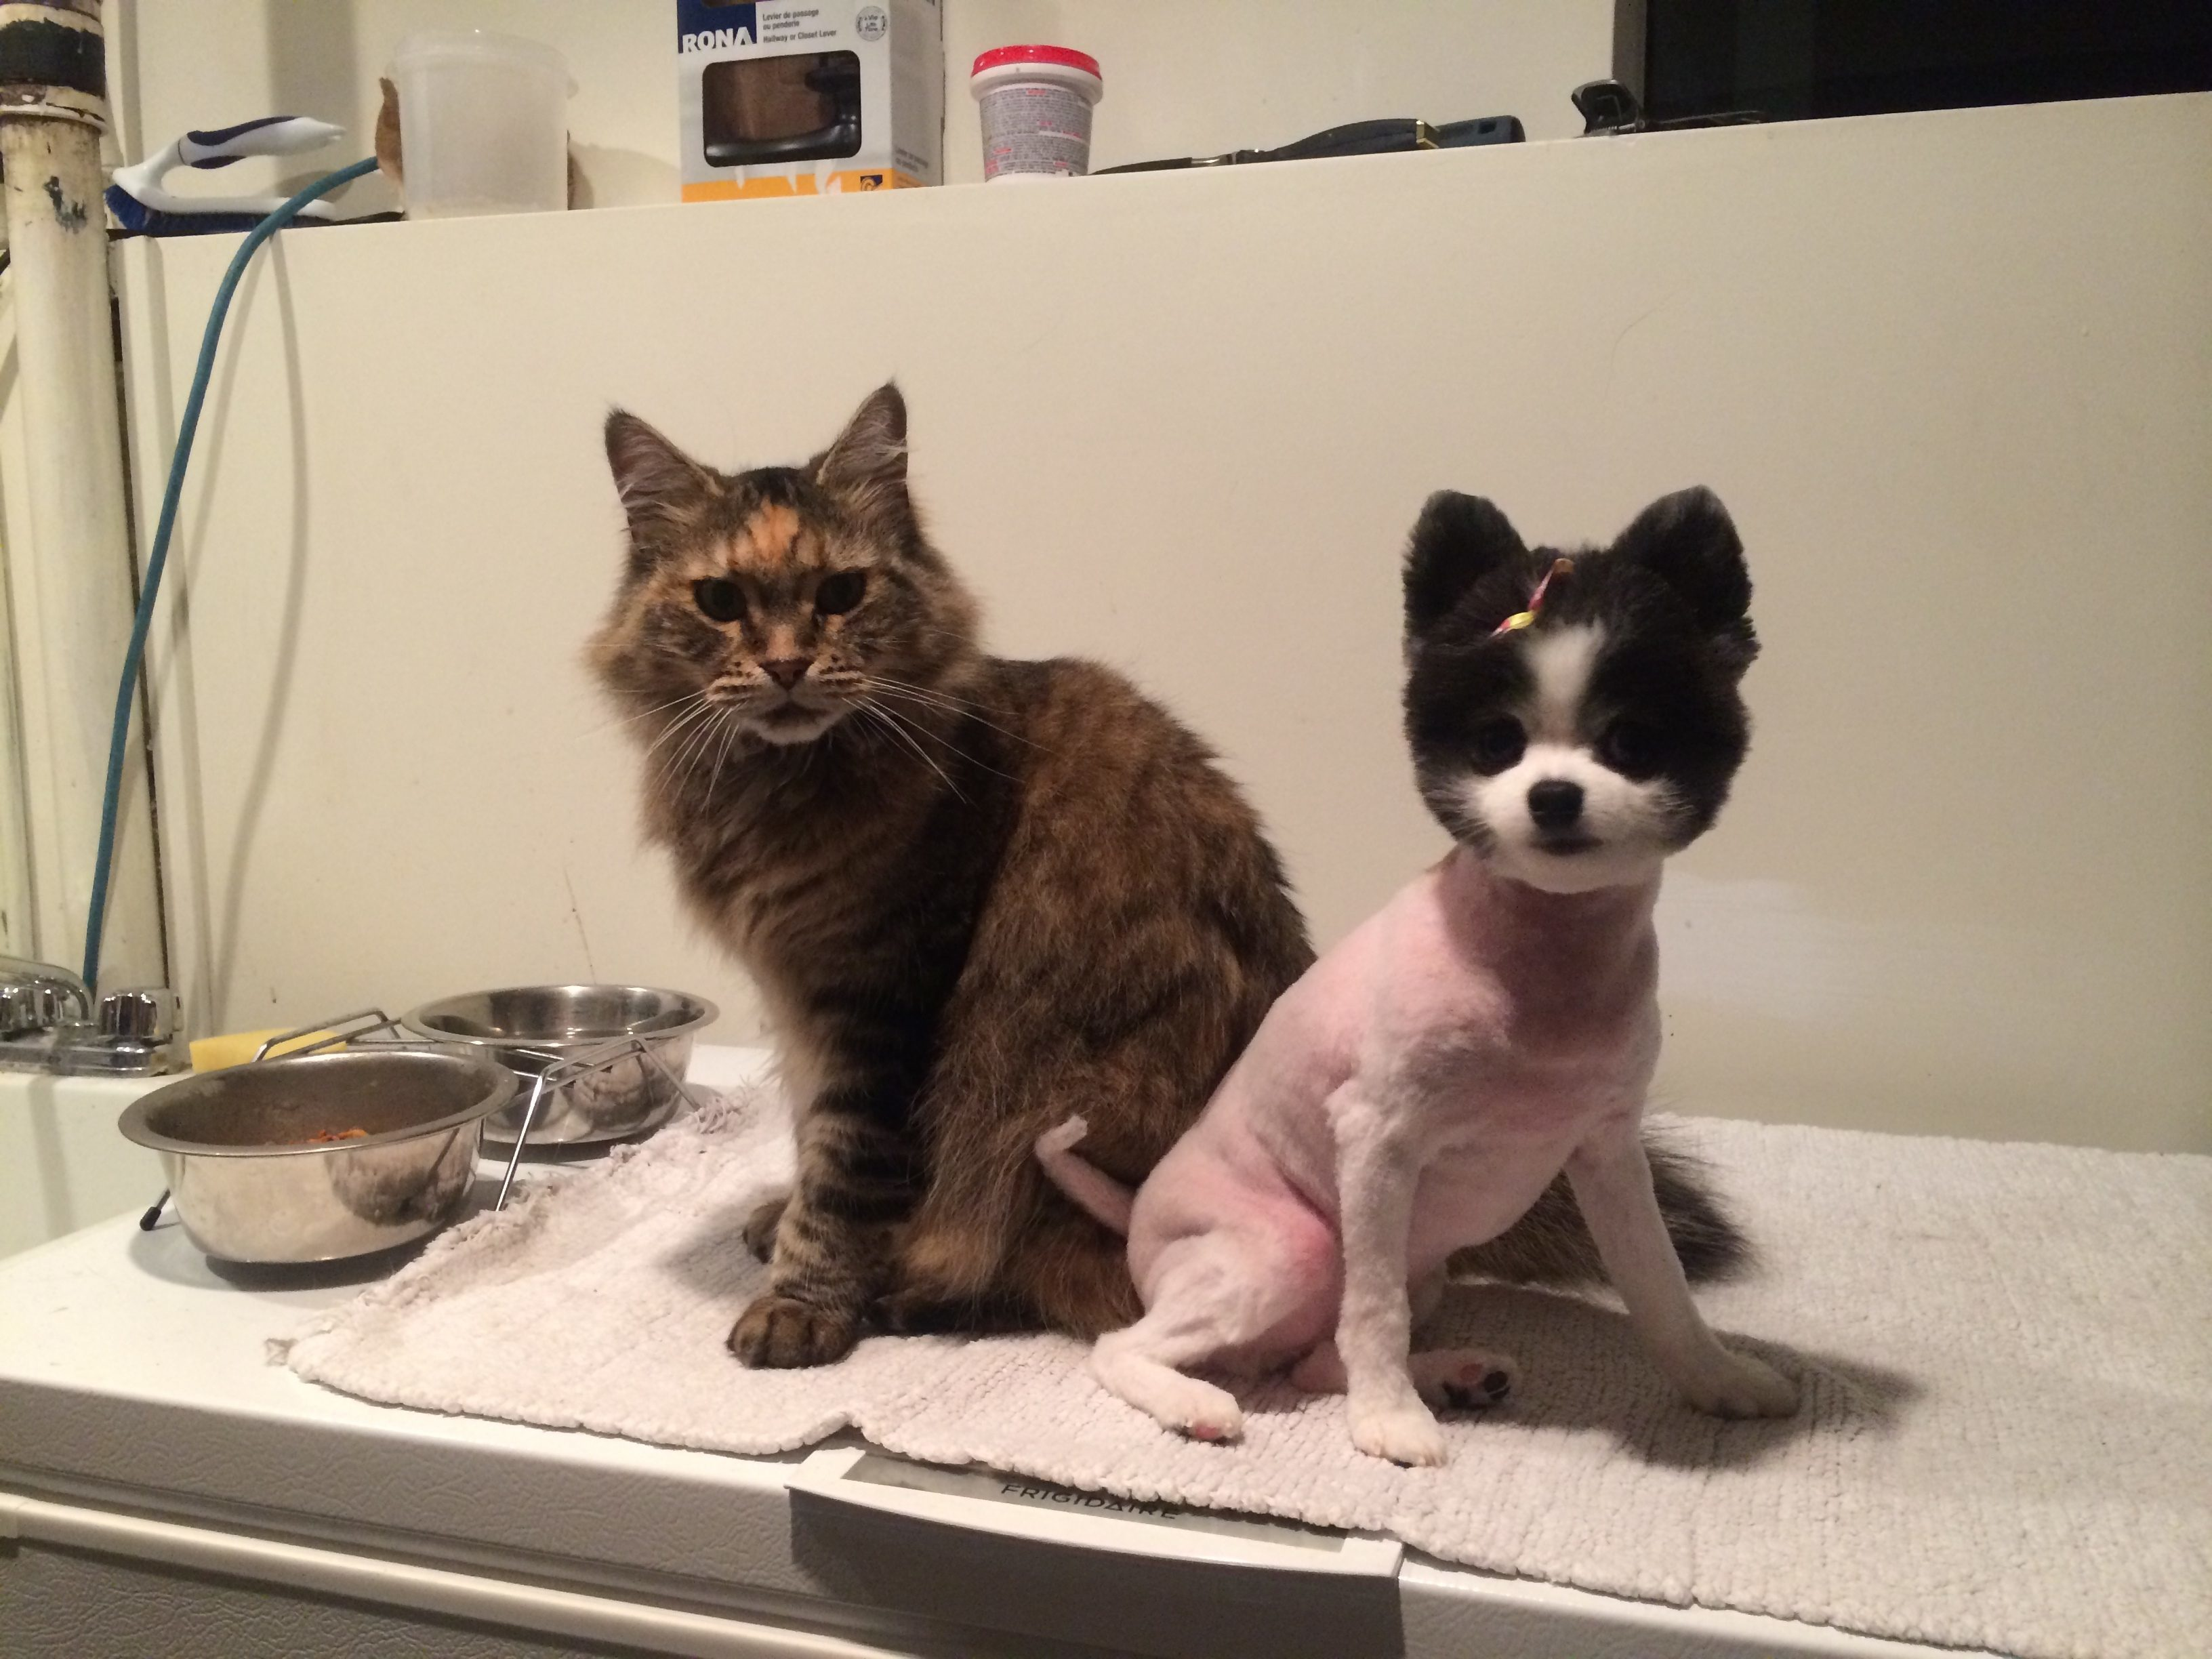 Does Petsmart Dog Grooming On Cats